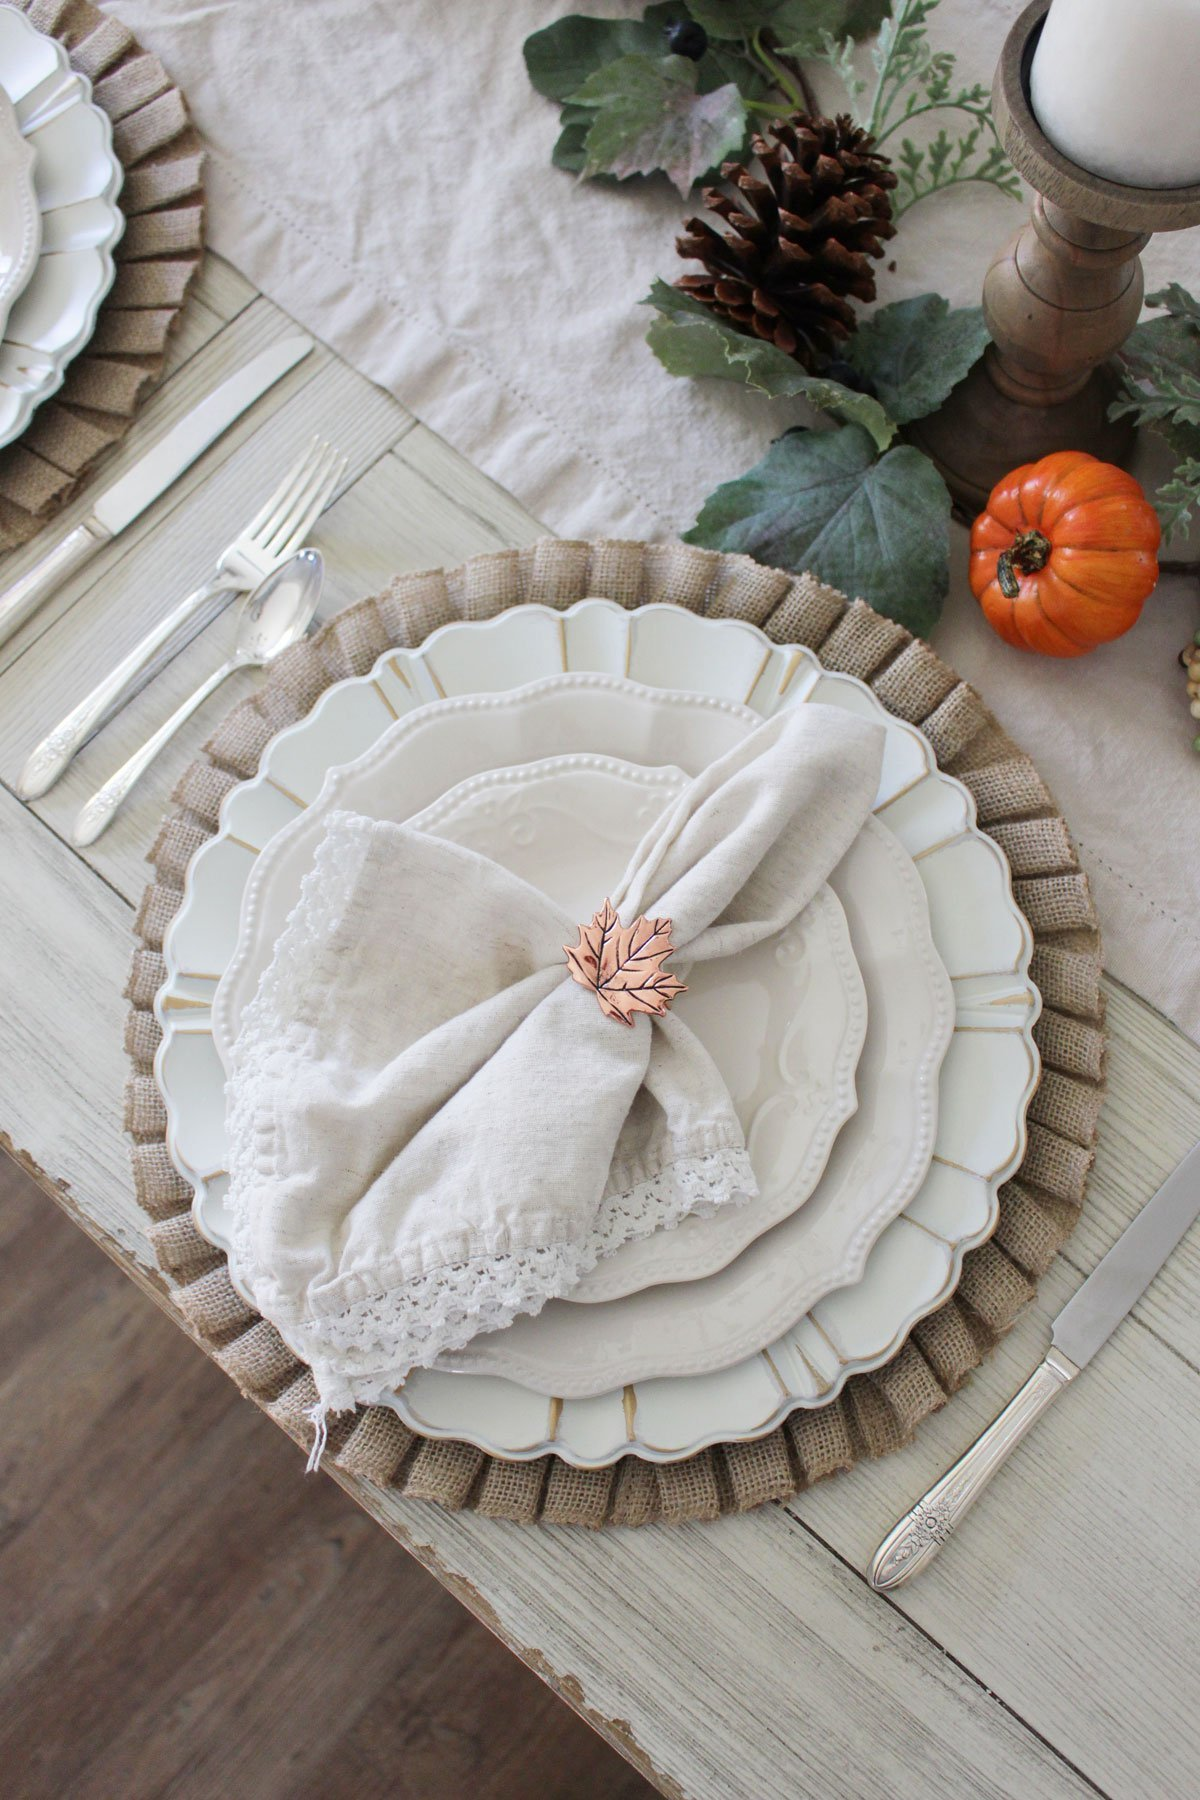 Pier 1 ruffled burlap place mats and distressed chargers